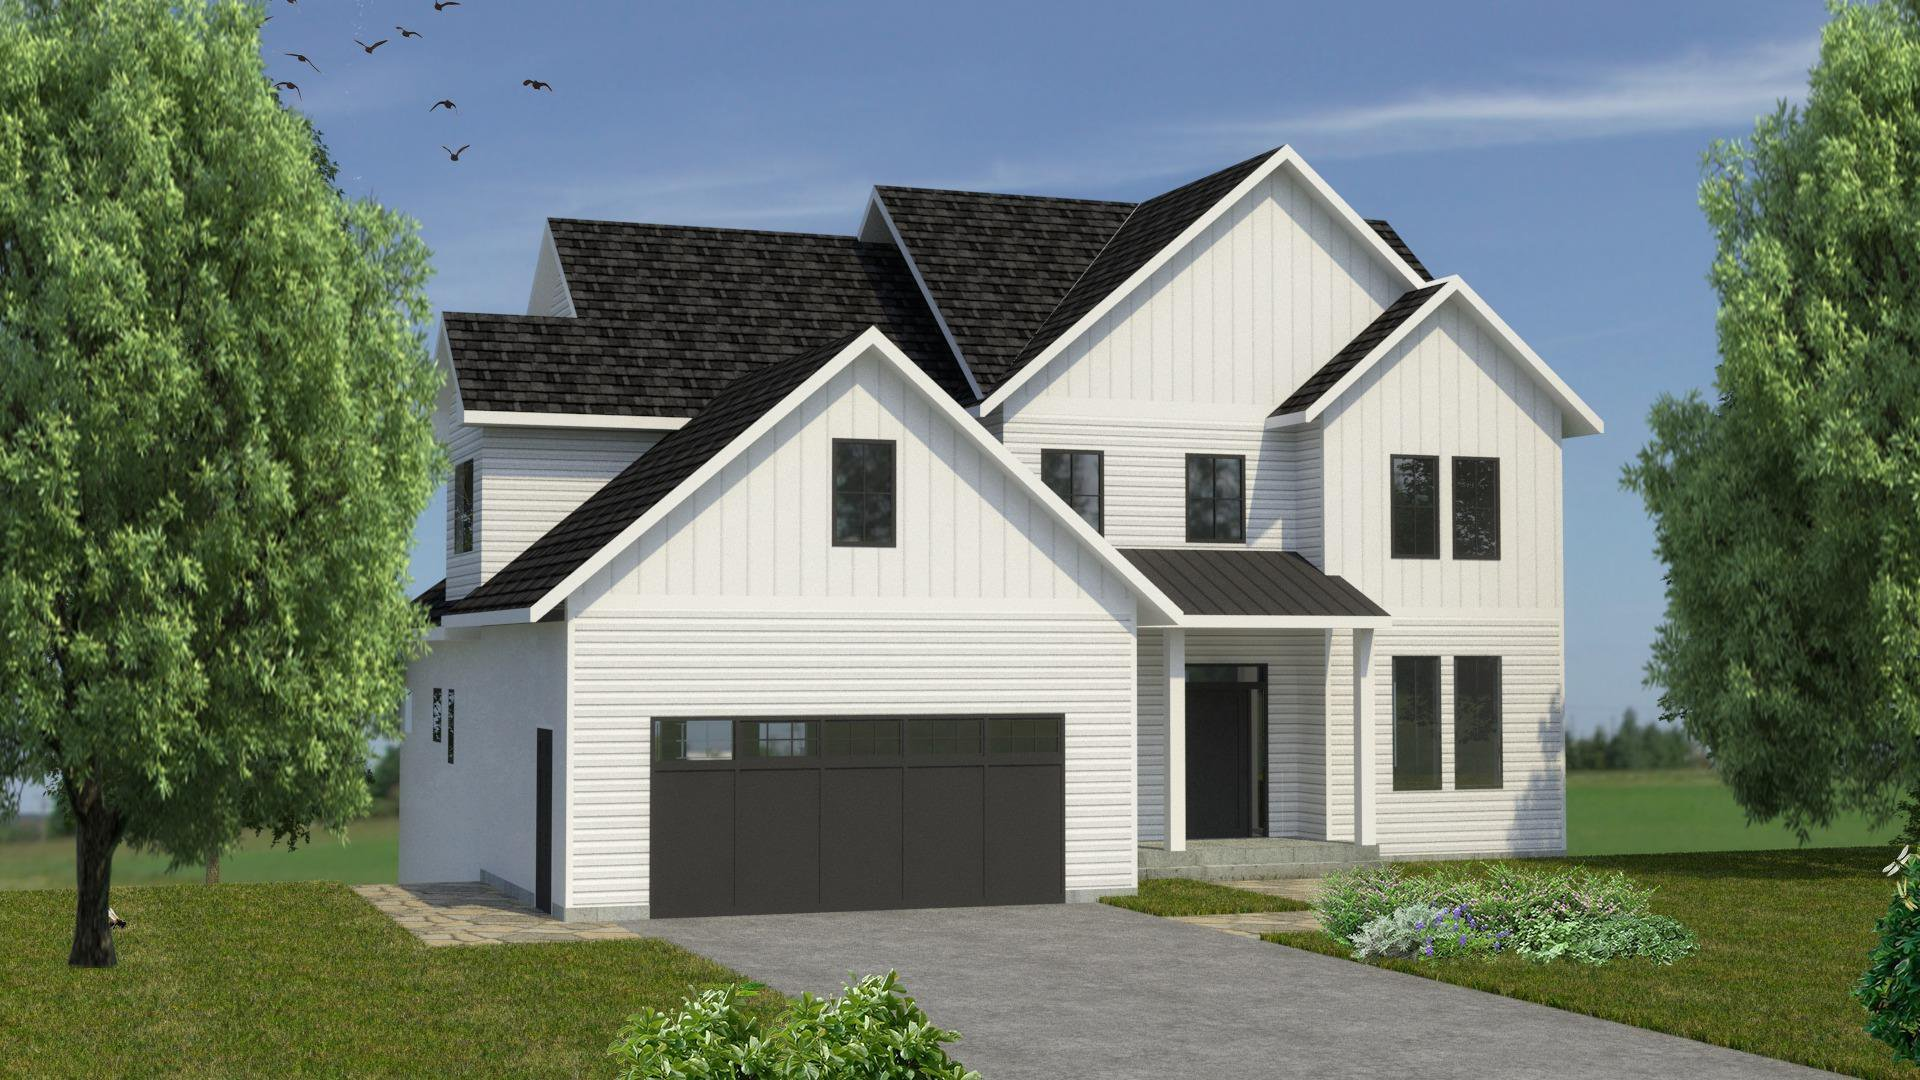 Main Photo: Lot 656 156 Azure Court in Middle Sackville: 25-Sackville Residential for sale (Halifax-Dartmouth)  : MLS®# 202003768